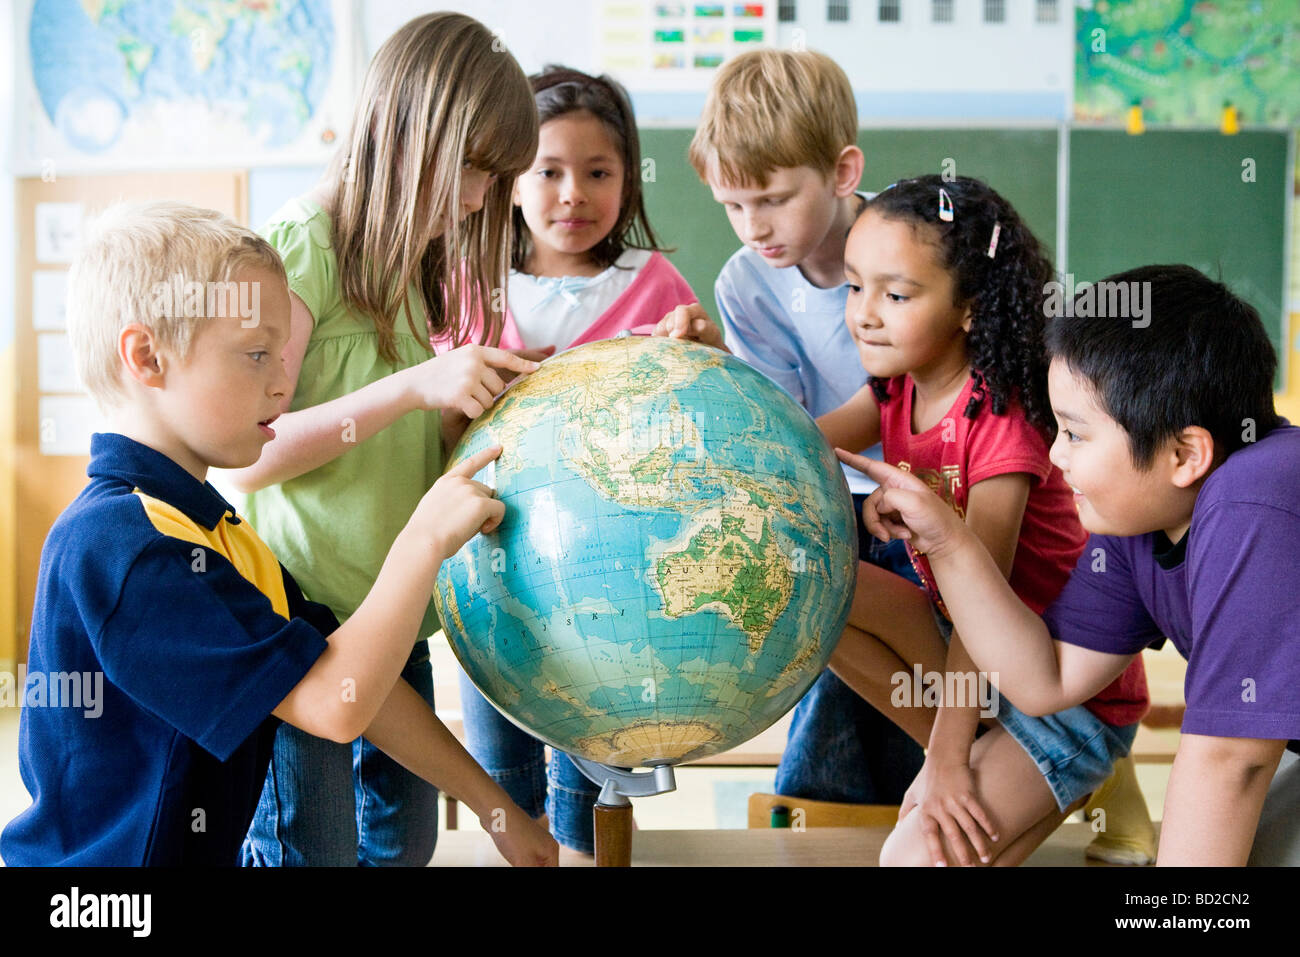 children looking at globe in class - Stock Image